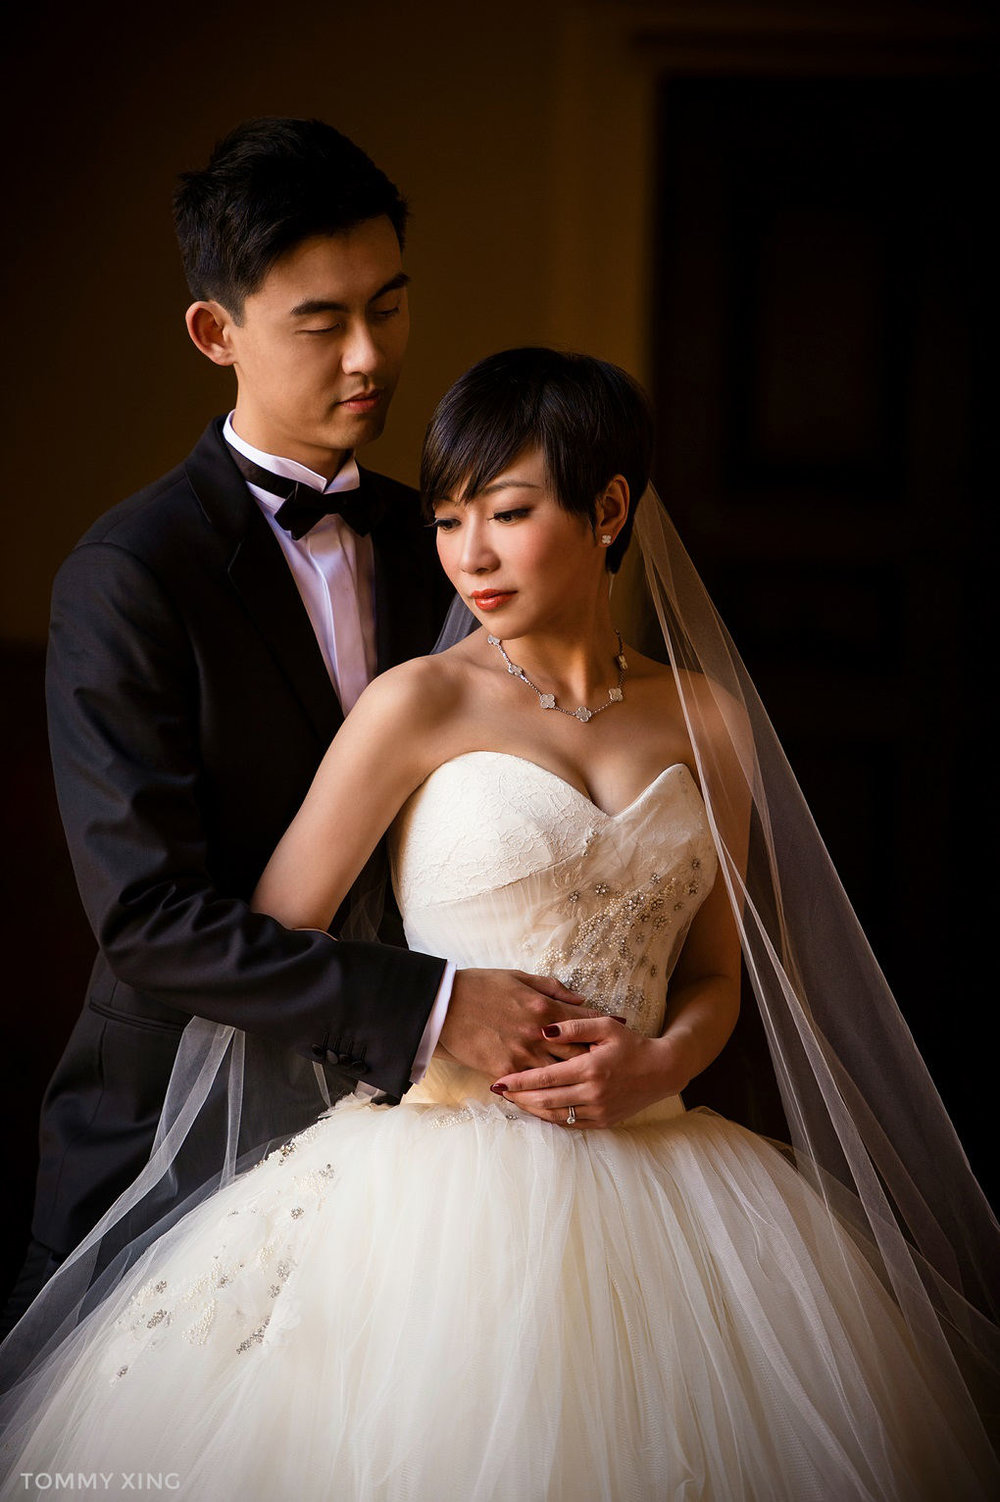 洛杉矶婚纱照 - Los Angeles Pre Wedding - Tommy Xing06.jpg